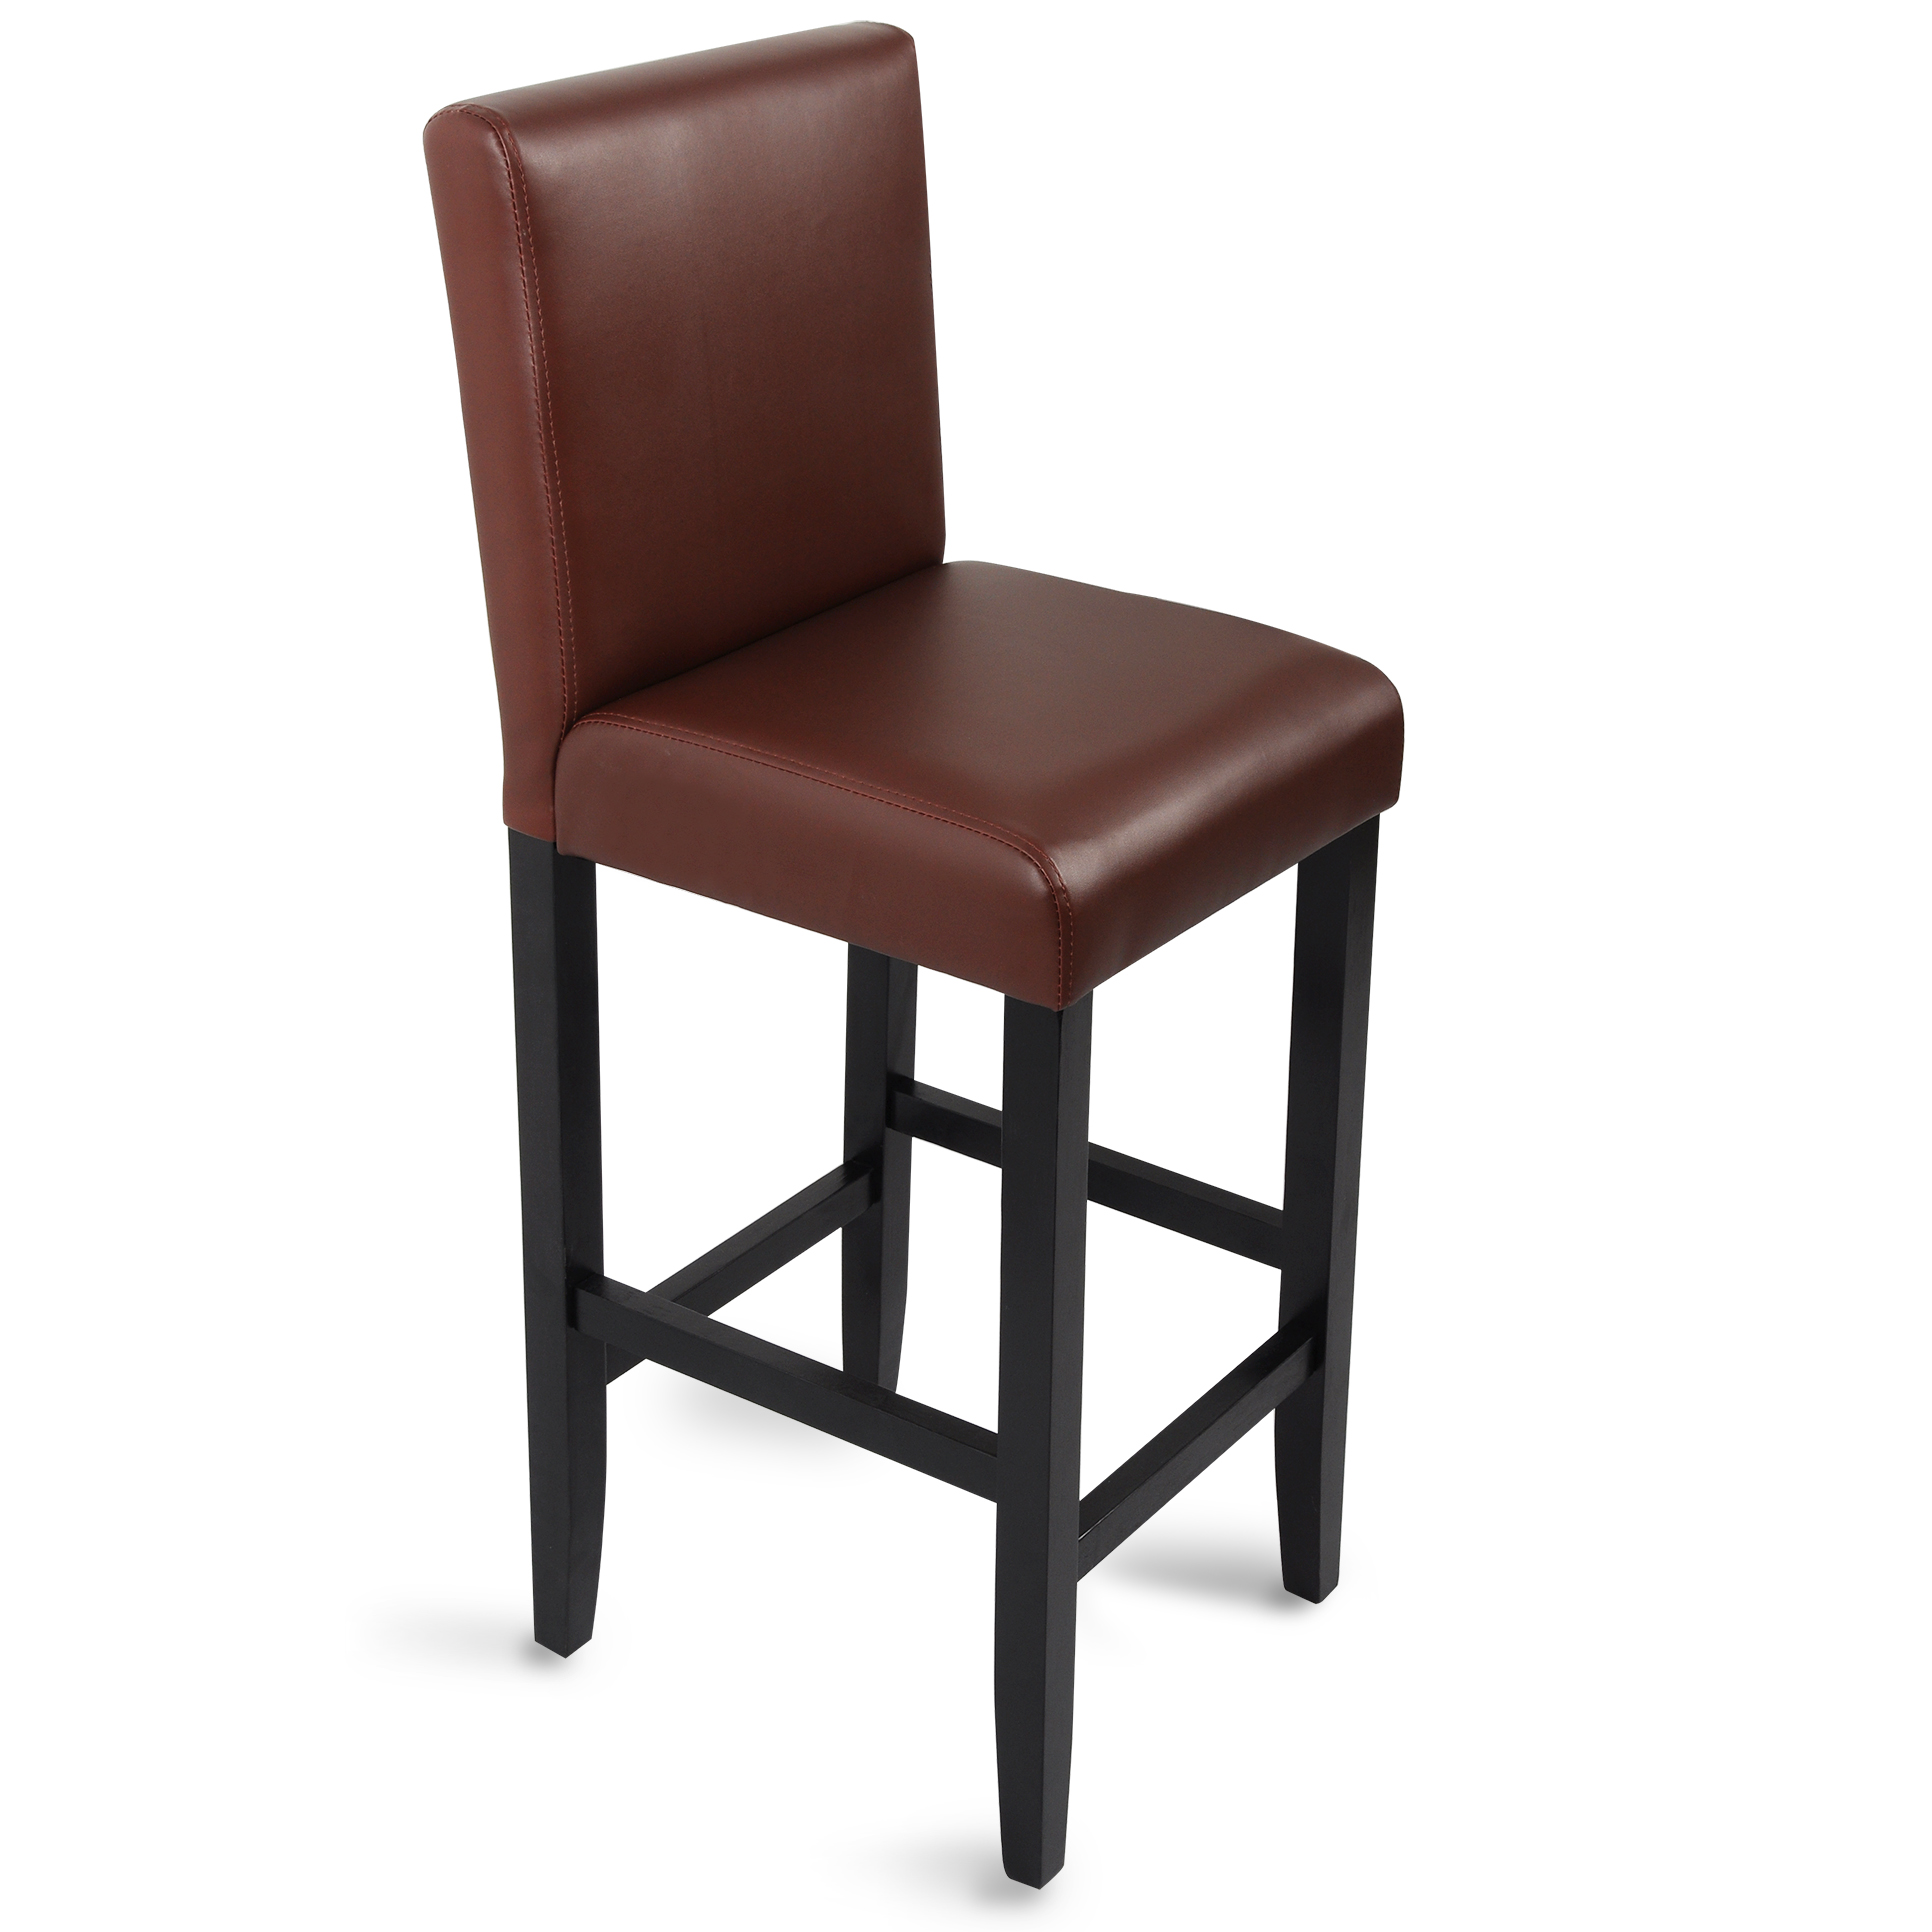 Bar Stools Barstool Wood Breakfast Kitchen Adjustable Stool Chair With Back U023 Ebay